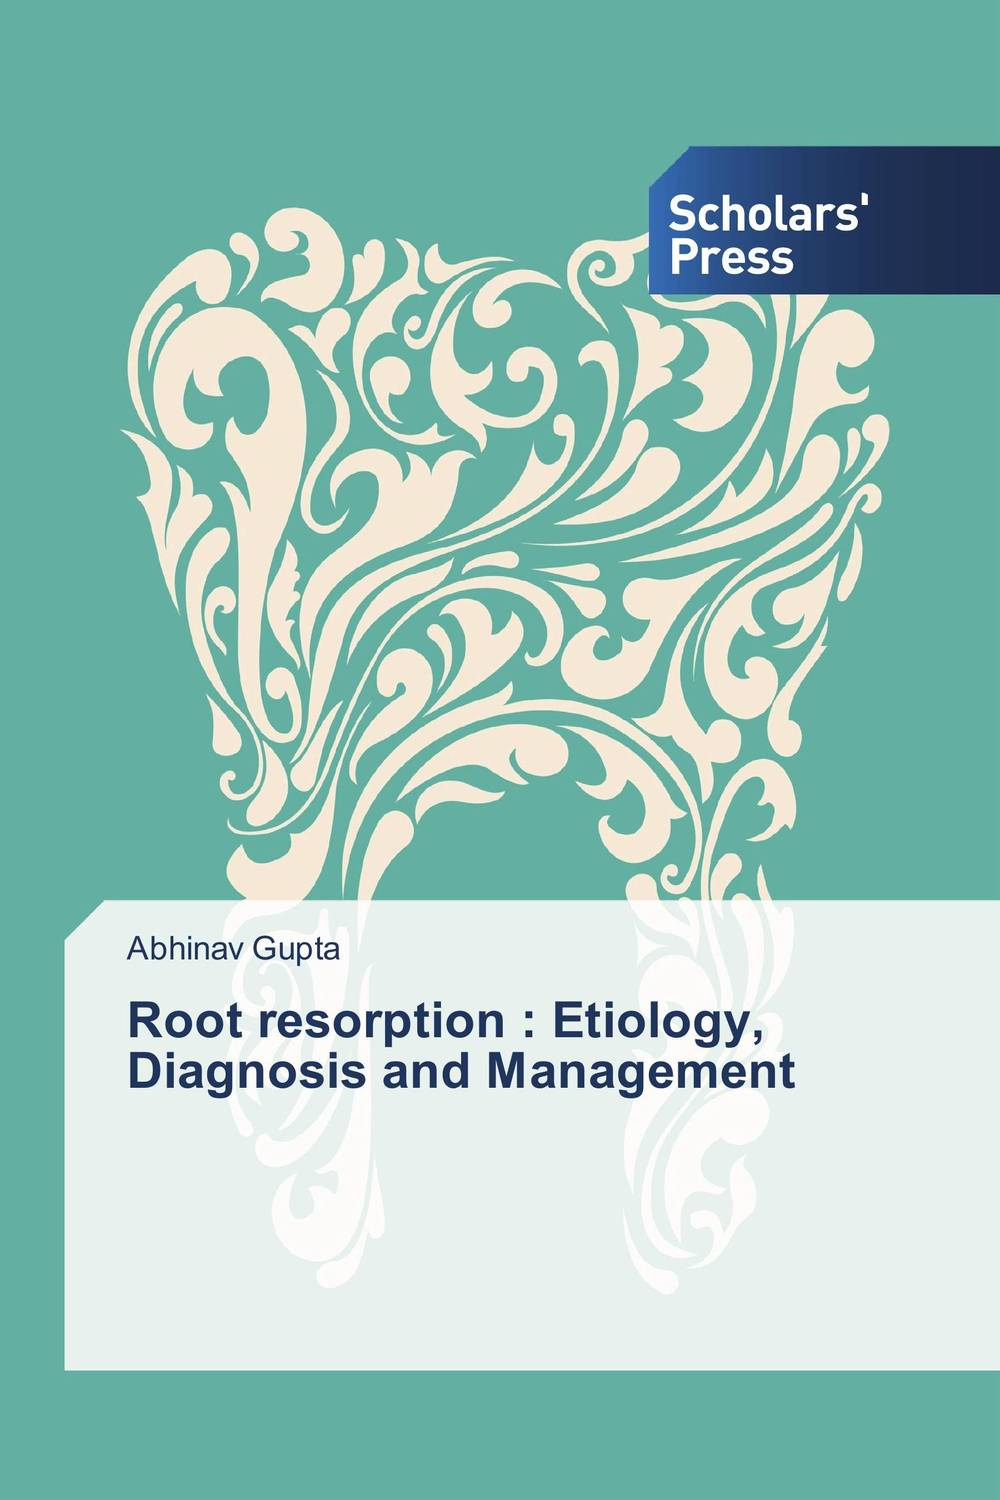 Root resorption : Etiology, Diagnosis and Management 1pc zirkon zahn system dental milling burs and stylus 1l 2l 4l to be chosen